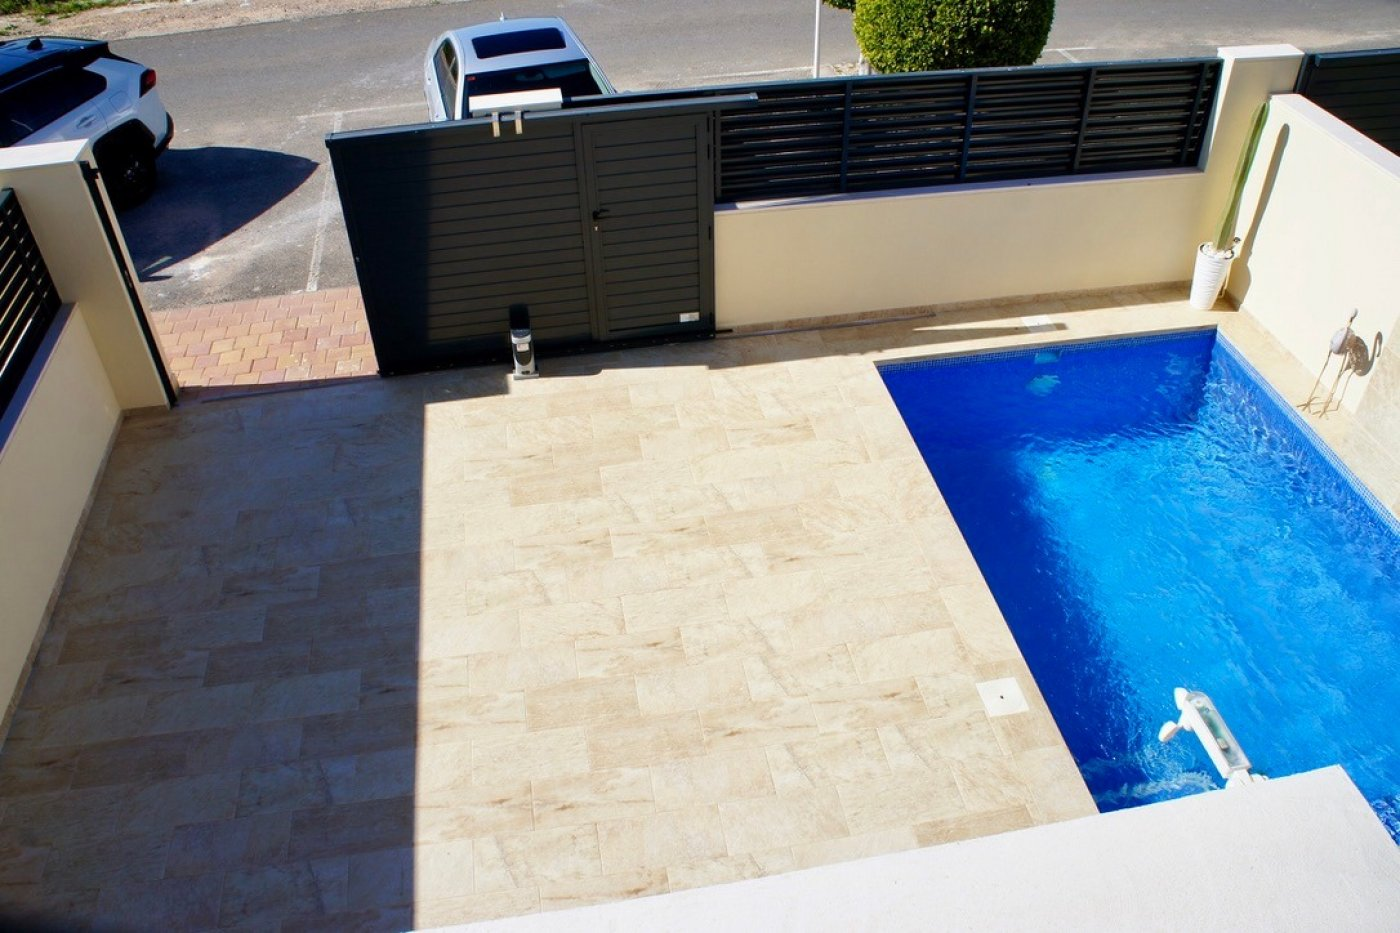 Gallery Image 22 of Key ready detached  3 bed, 3 bath villa with swimming pool at a very competitive price